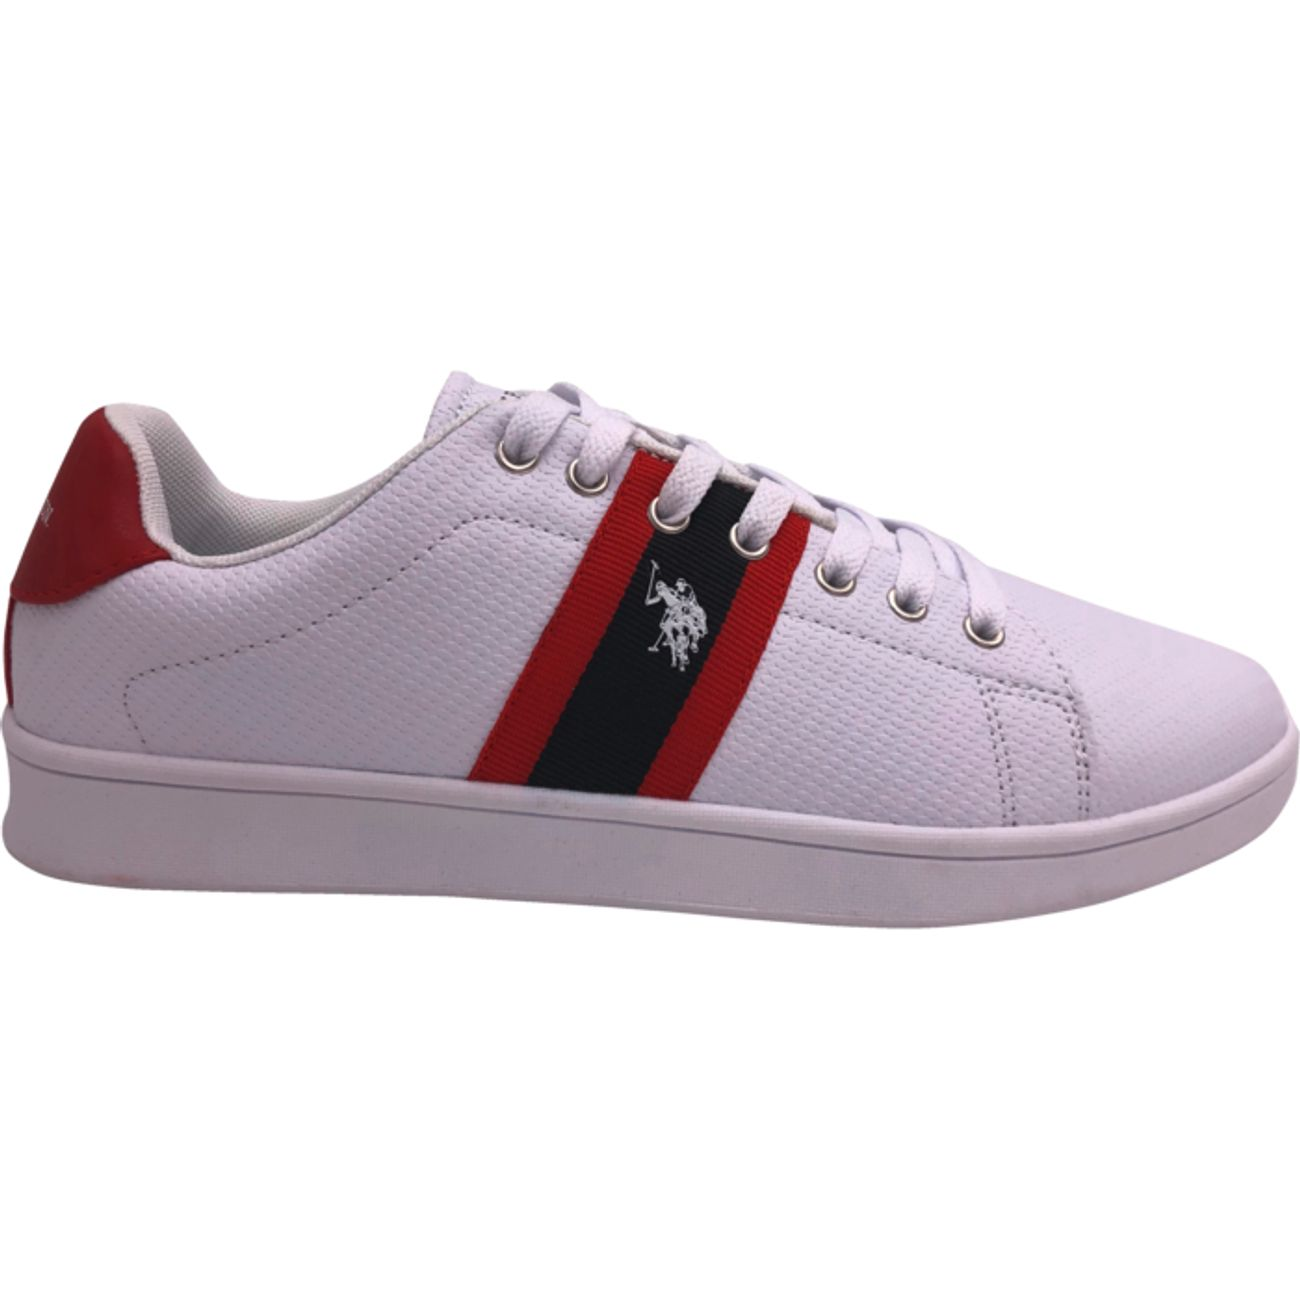 CHAUSSURES Multisport adulte US POLO THOMAS